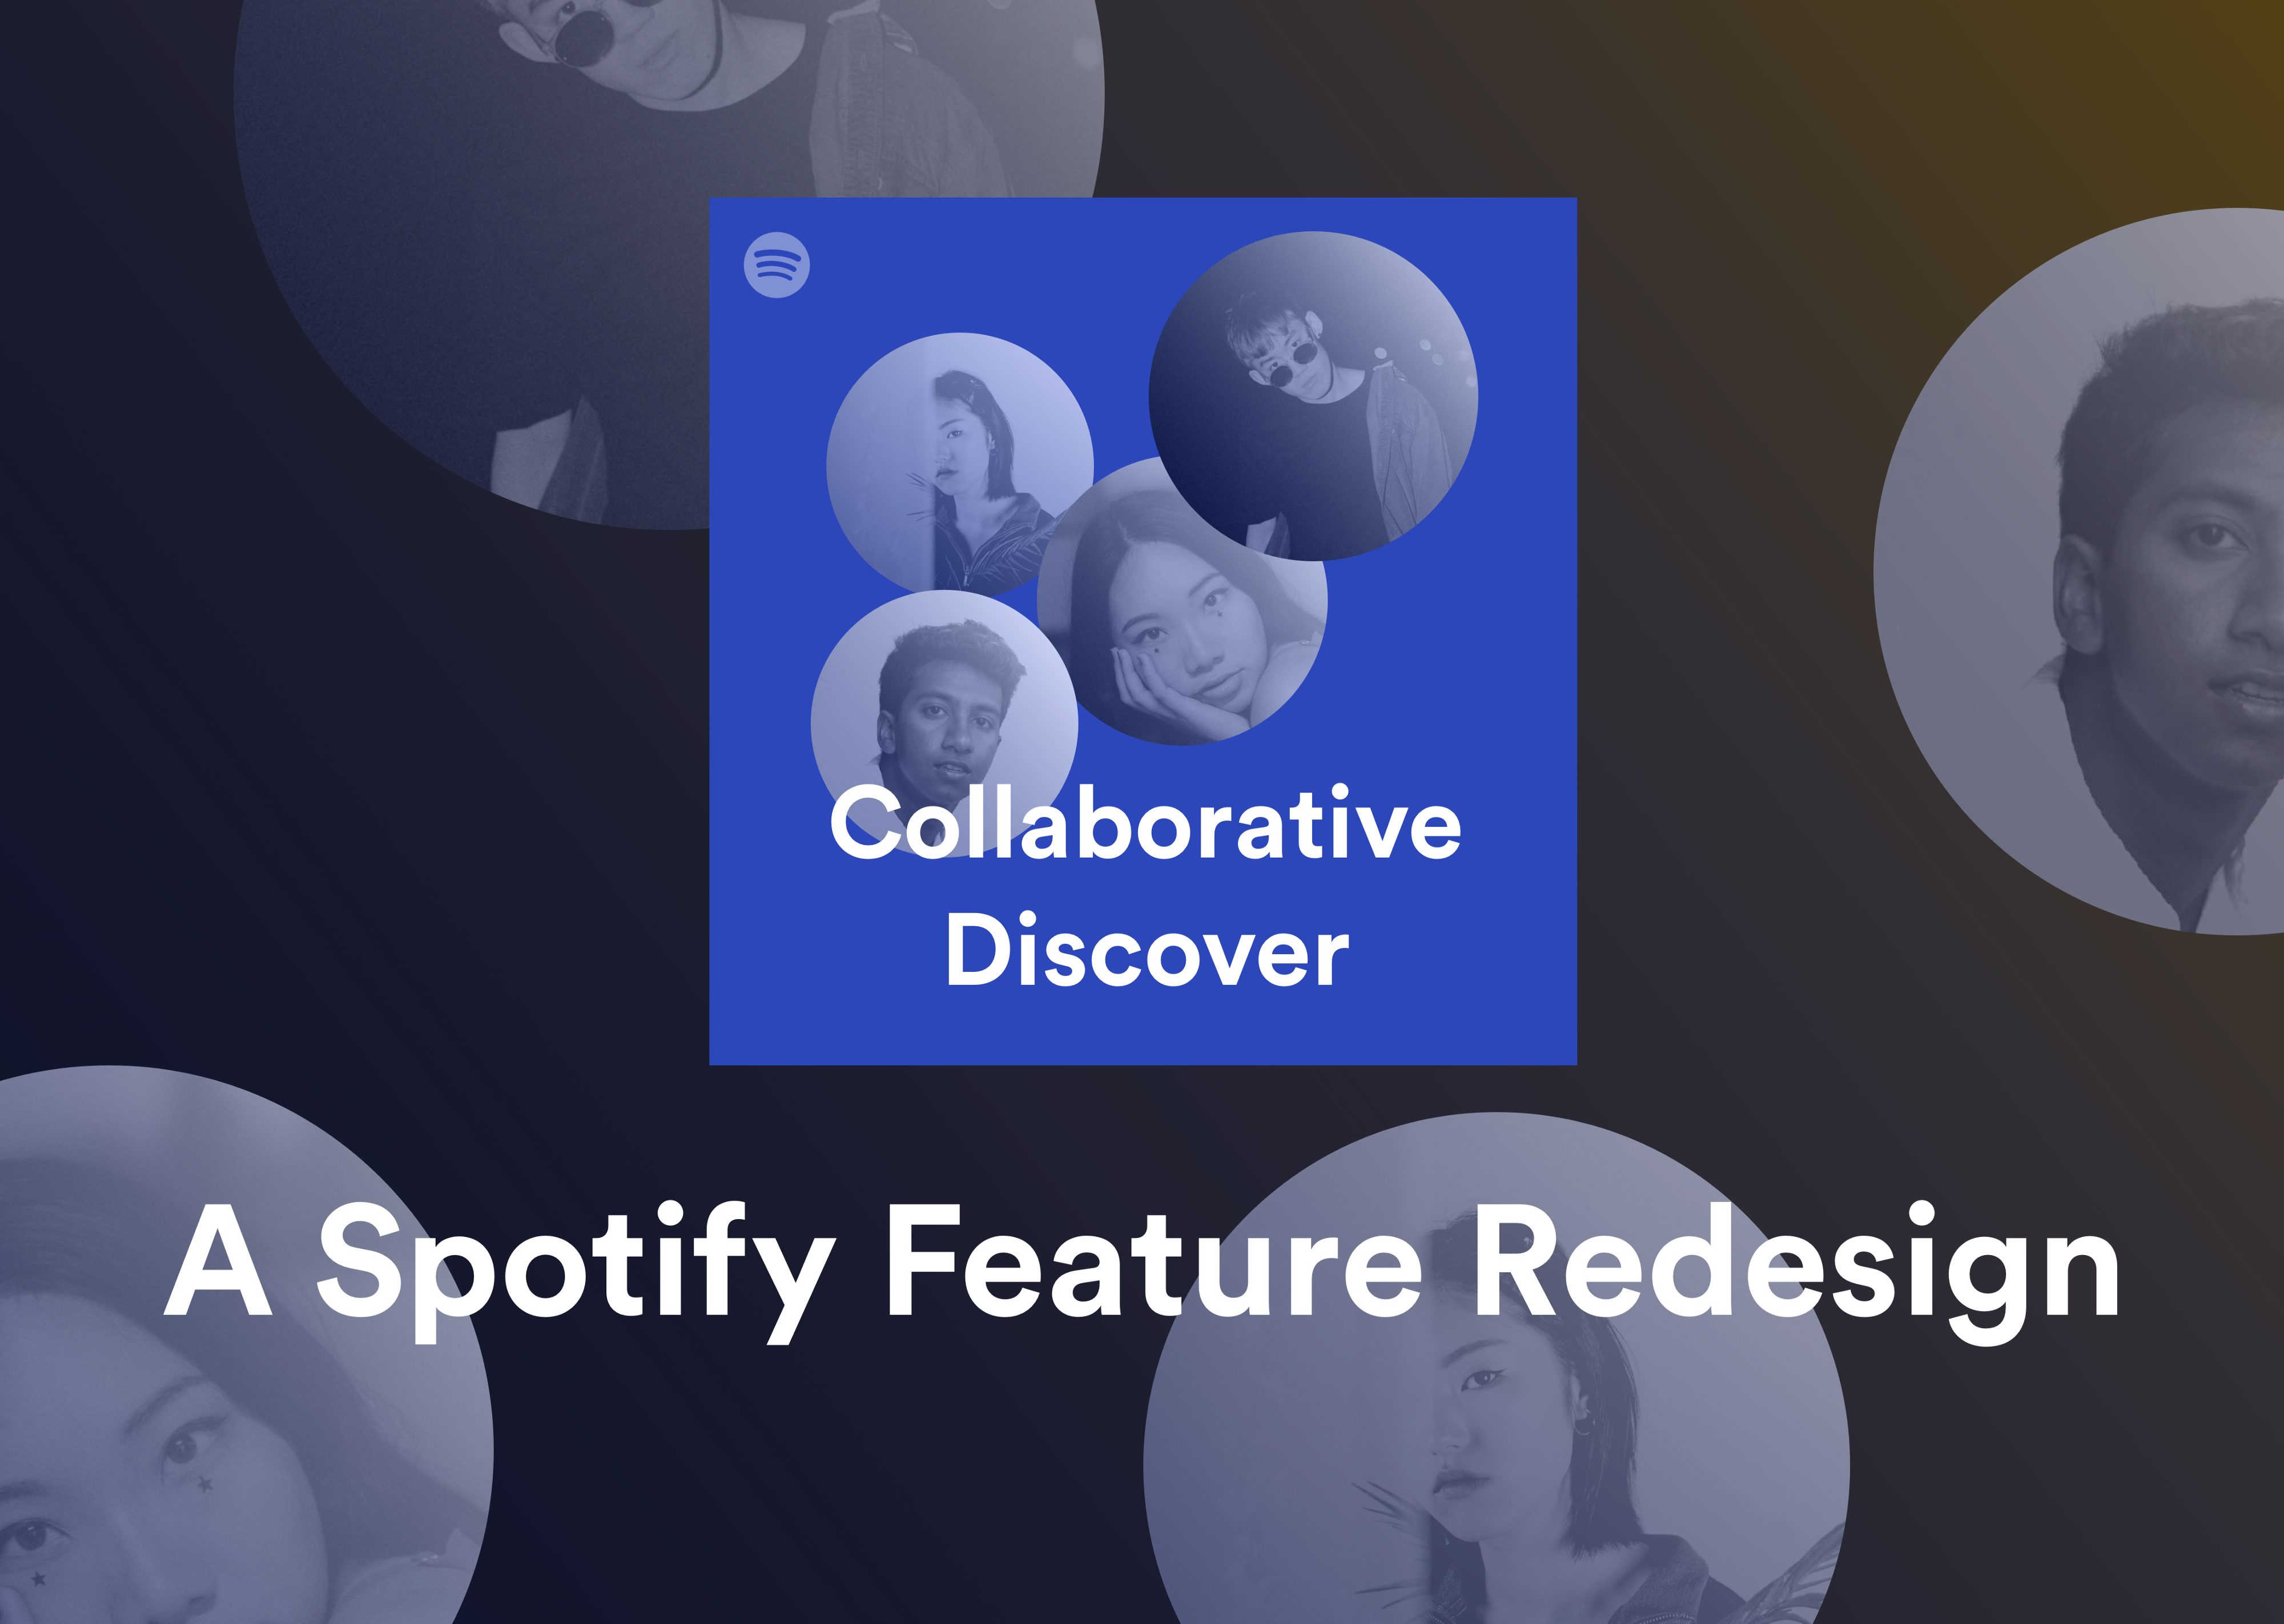 Collaborative Discover — A Spotify Feature Redesign